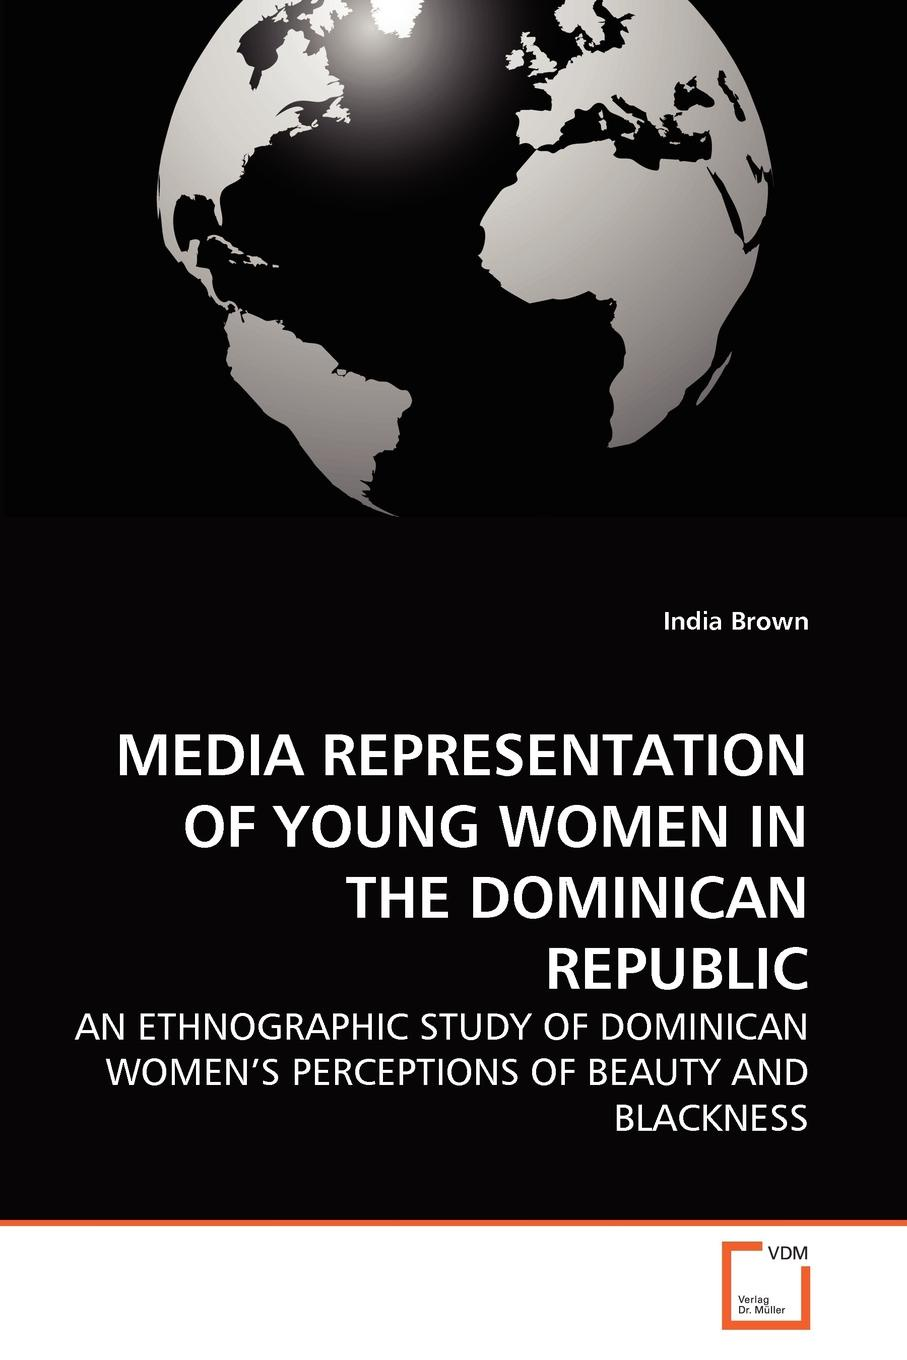 India Brown MEDIA REPRESENTATION OF YOUNG WOMEN IN THE DOMINICAN REPUBLIC priest i am through the eyez of the warriorz of light